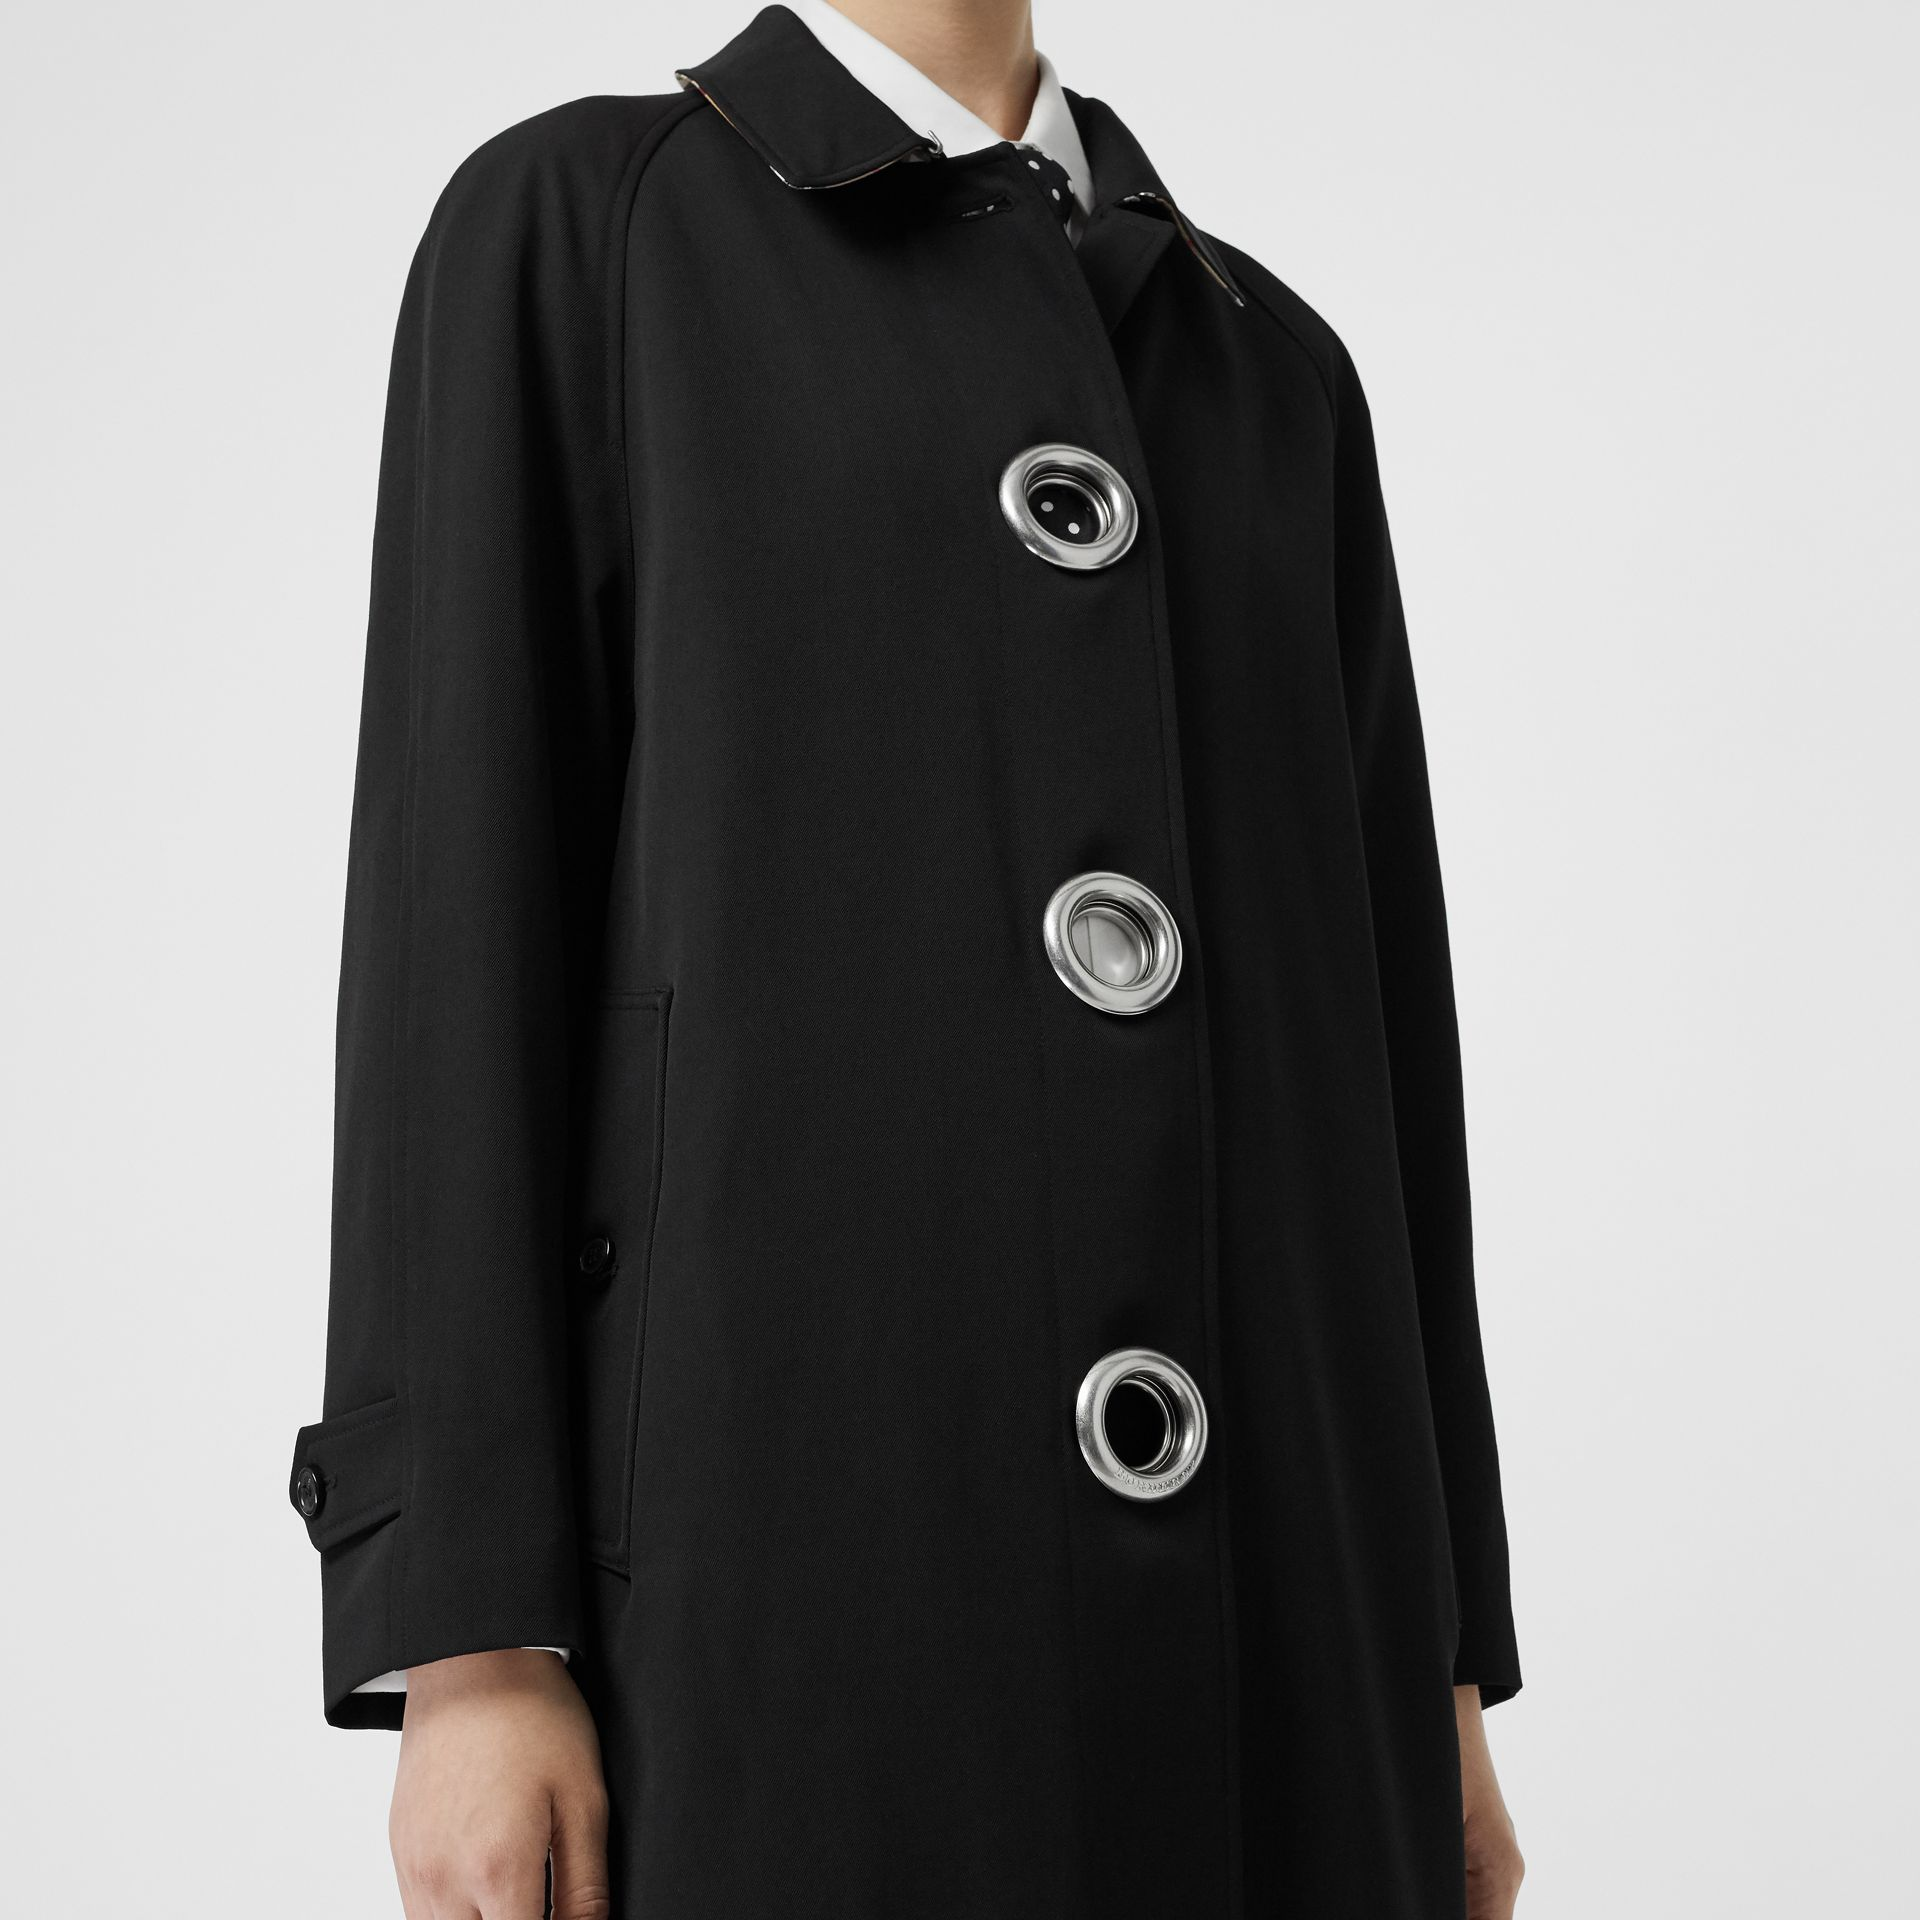 Grommet Detail Wool Gabardine Car Coat in Black - Women | Burberry United Kingdom - gallery image 5